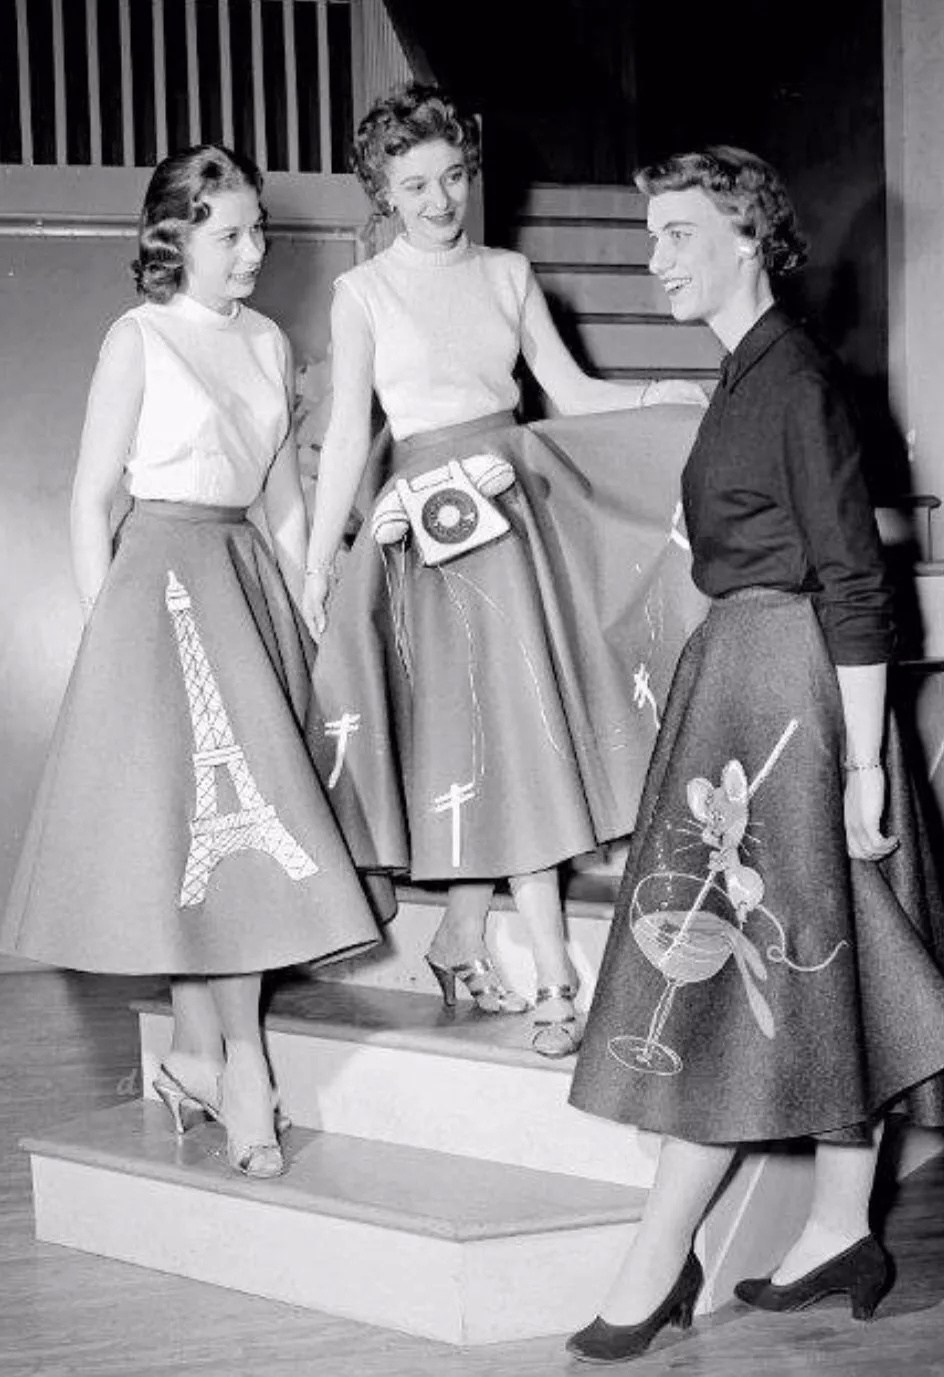 poodle skirt: the fun 50s fashion trend that won't die